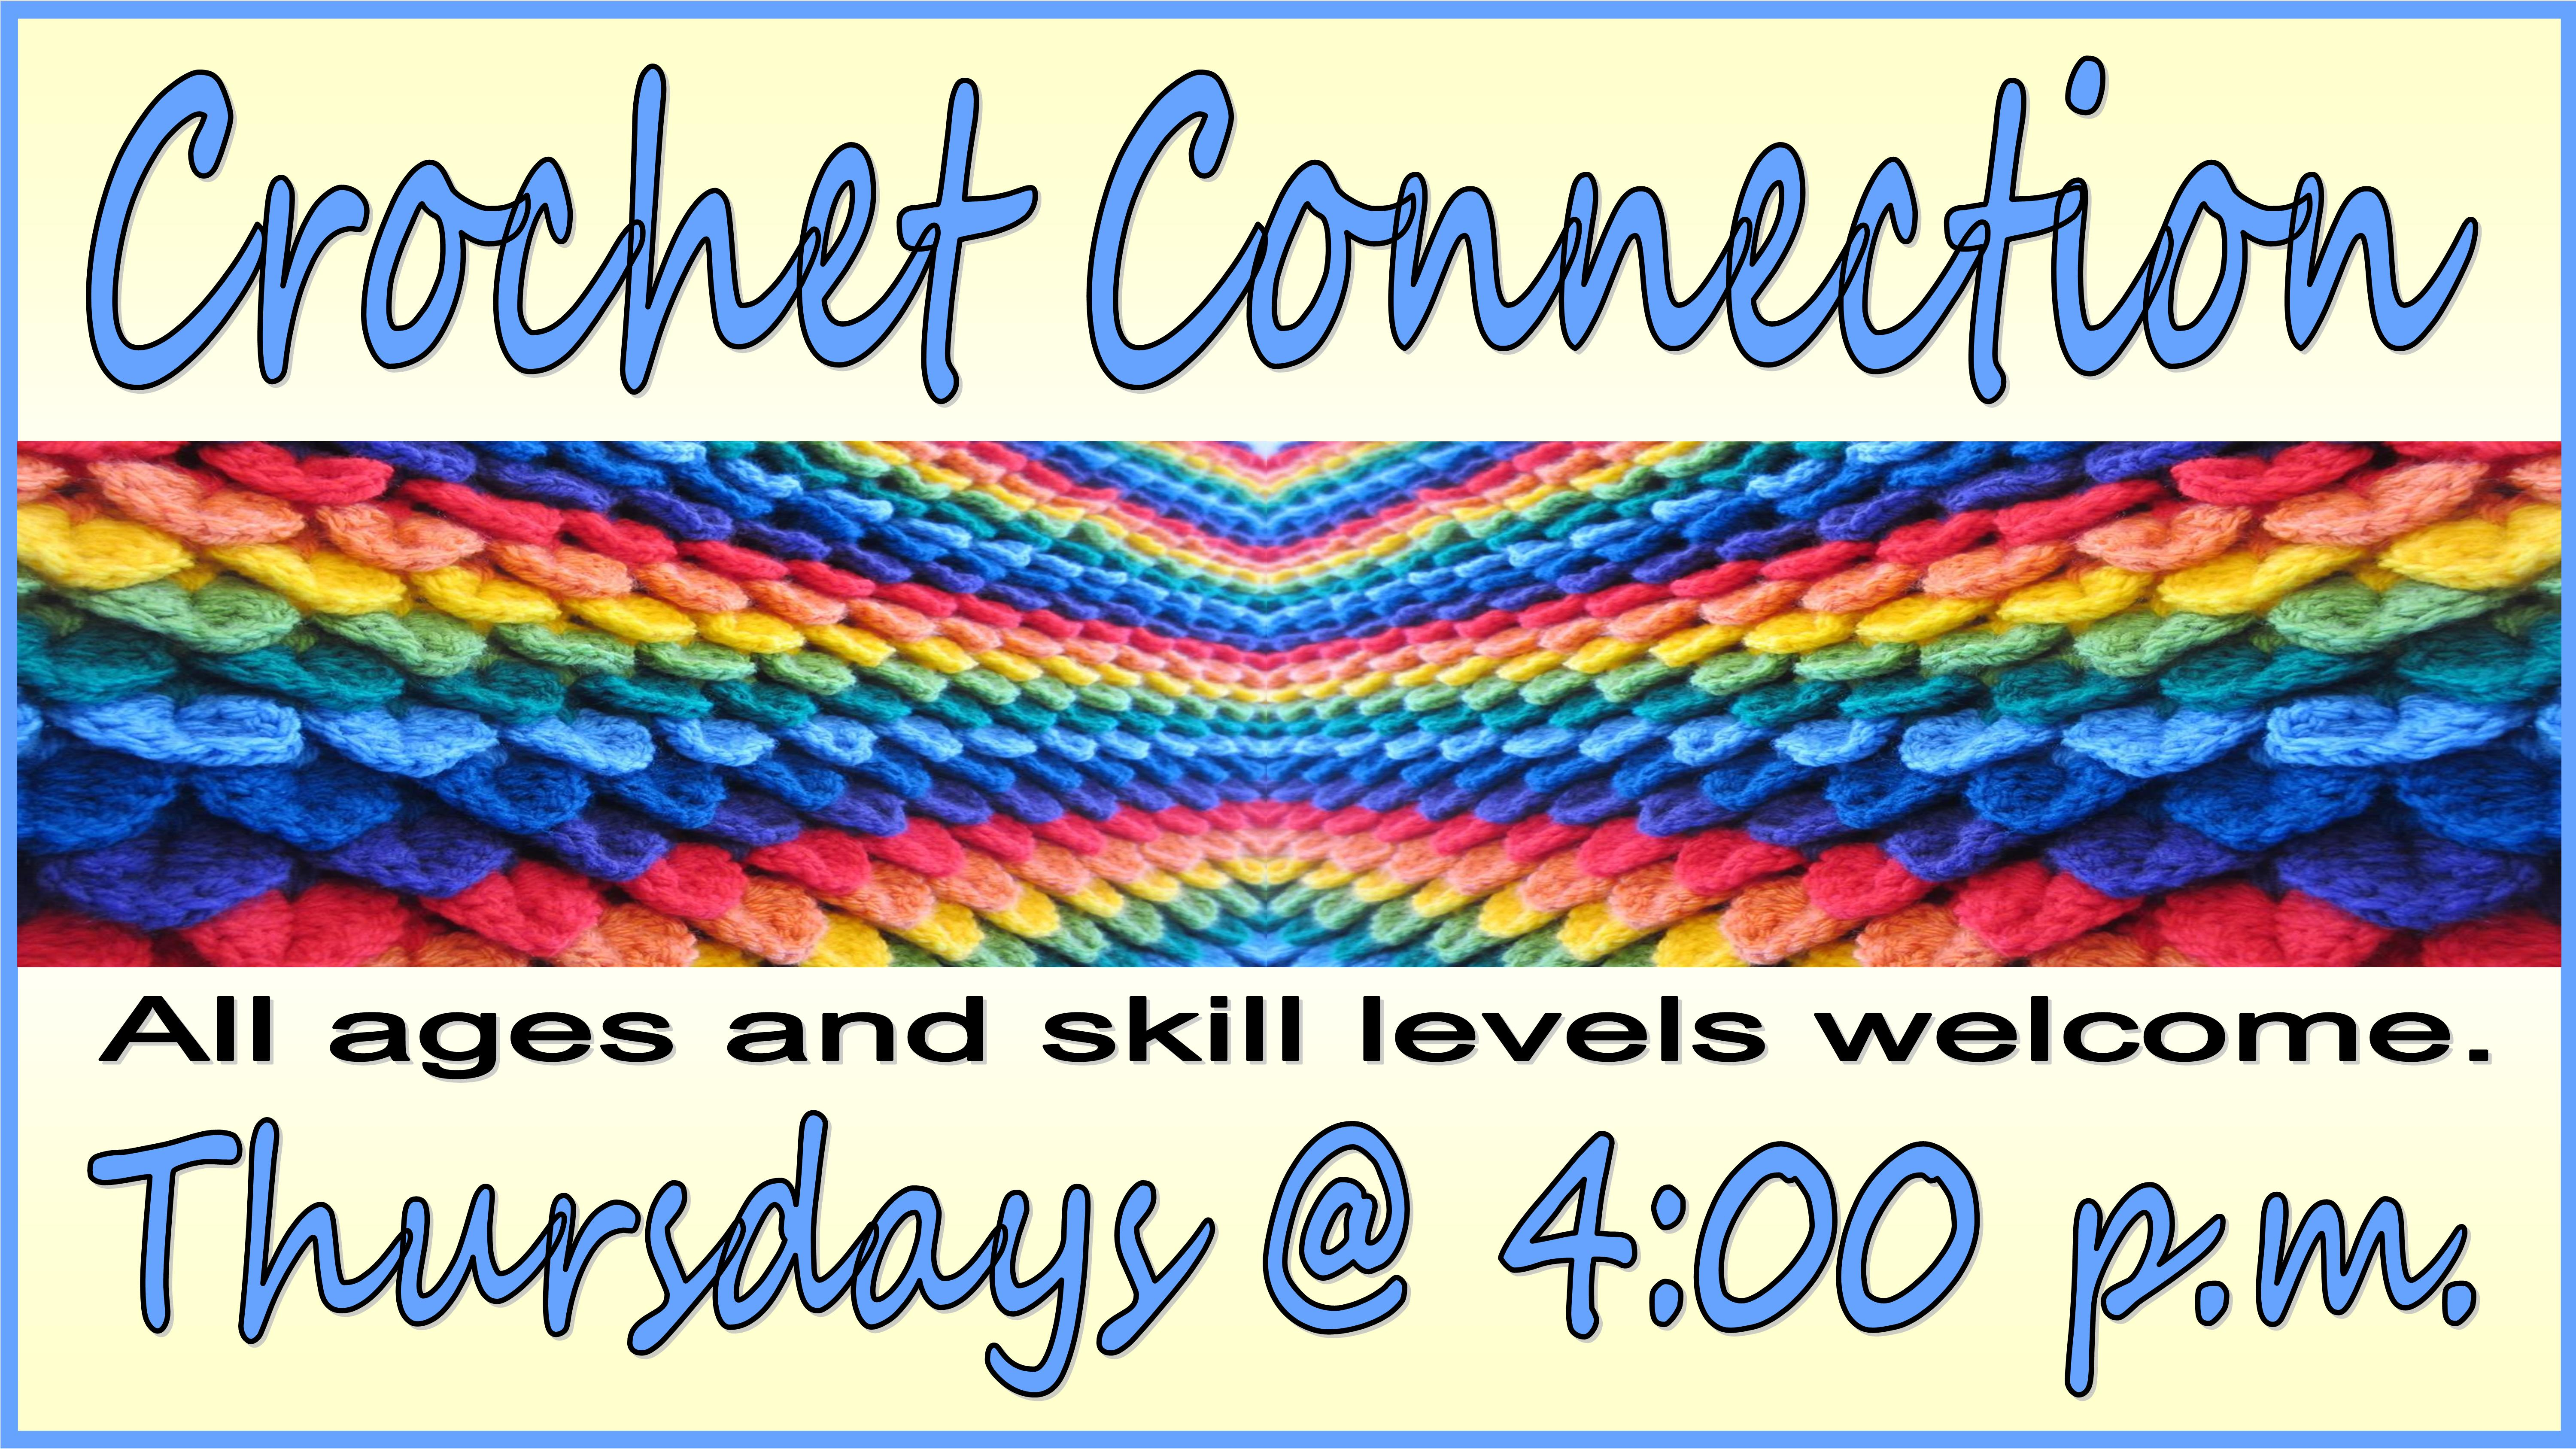 Crochet Connection